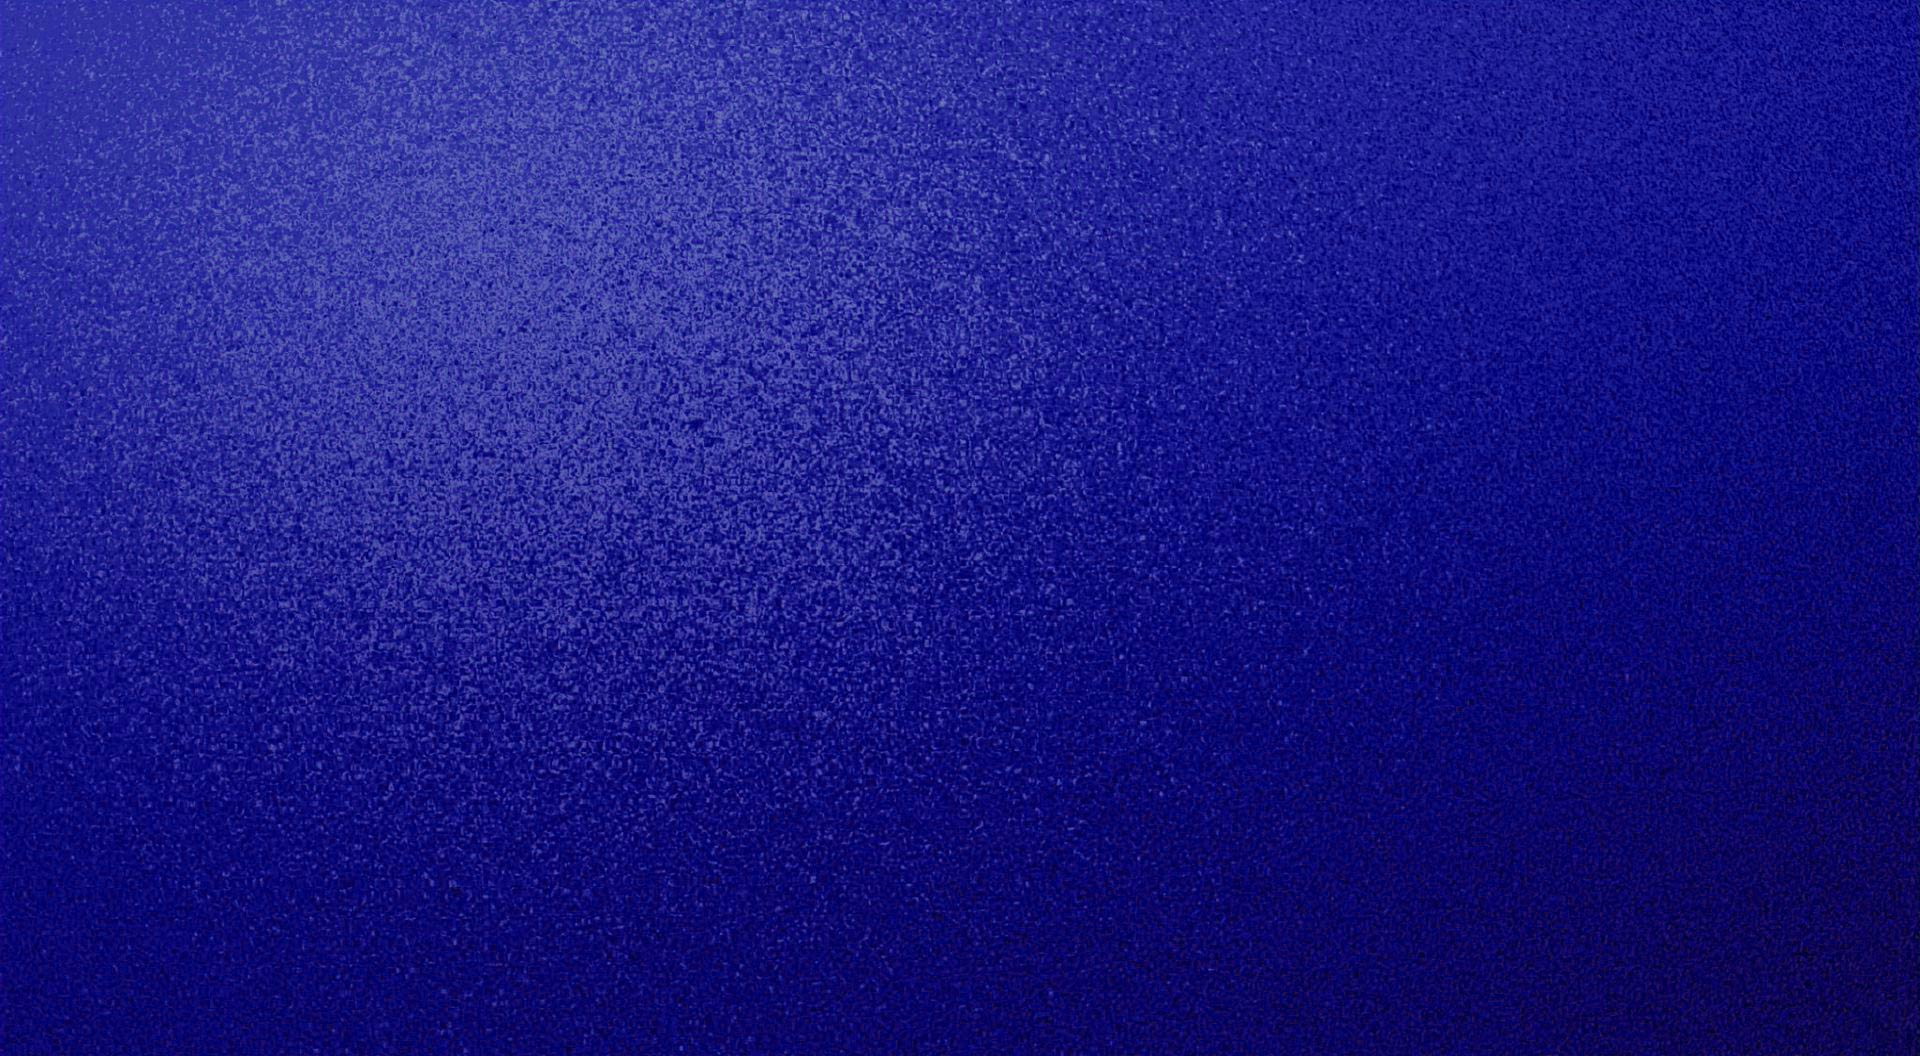 Navy blue backgrounds wallpaper cave for Plain blue wallpaper for walls